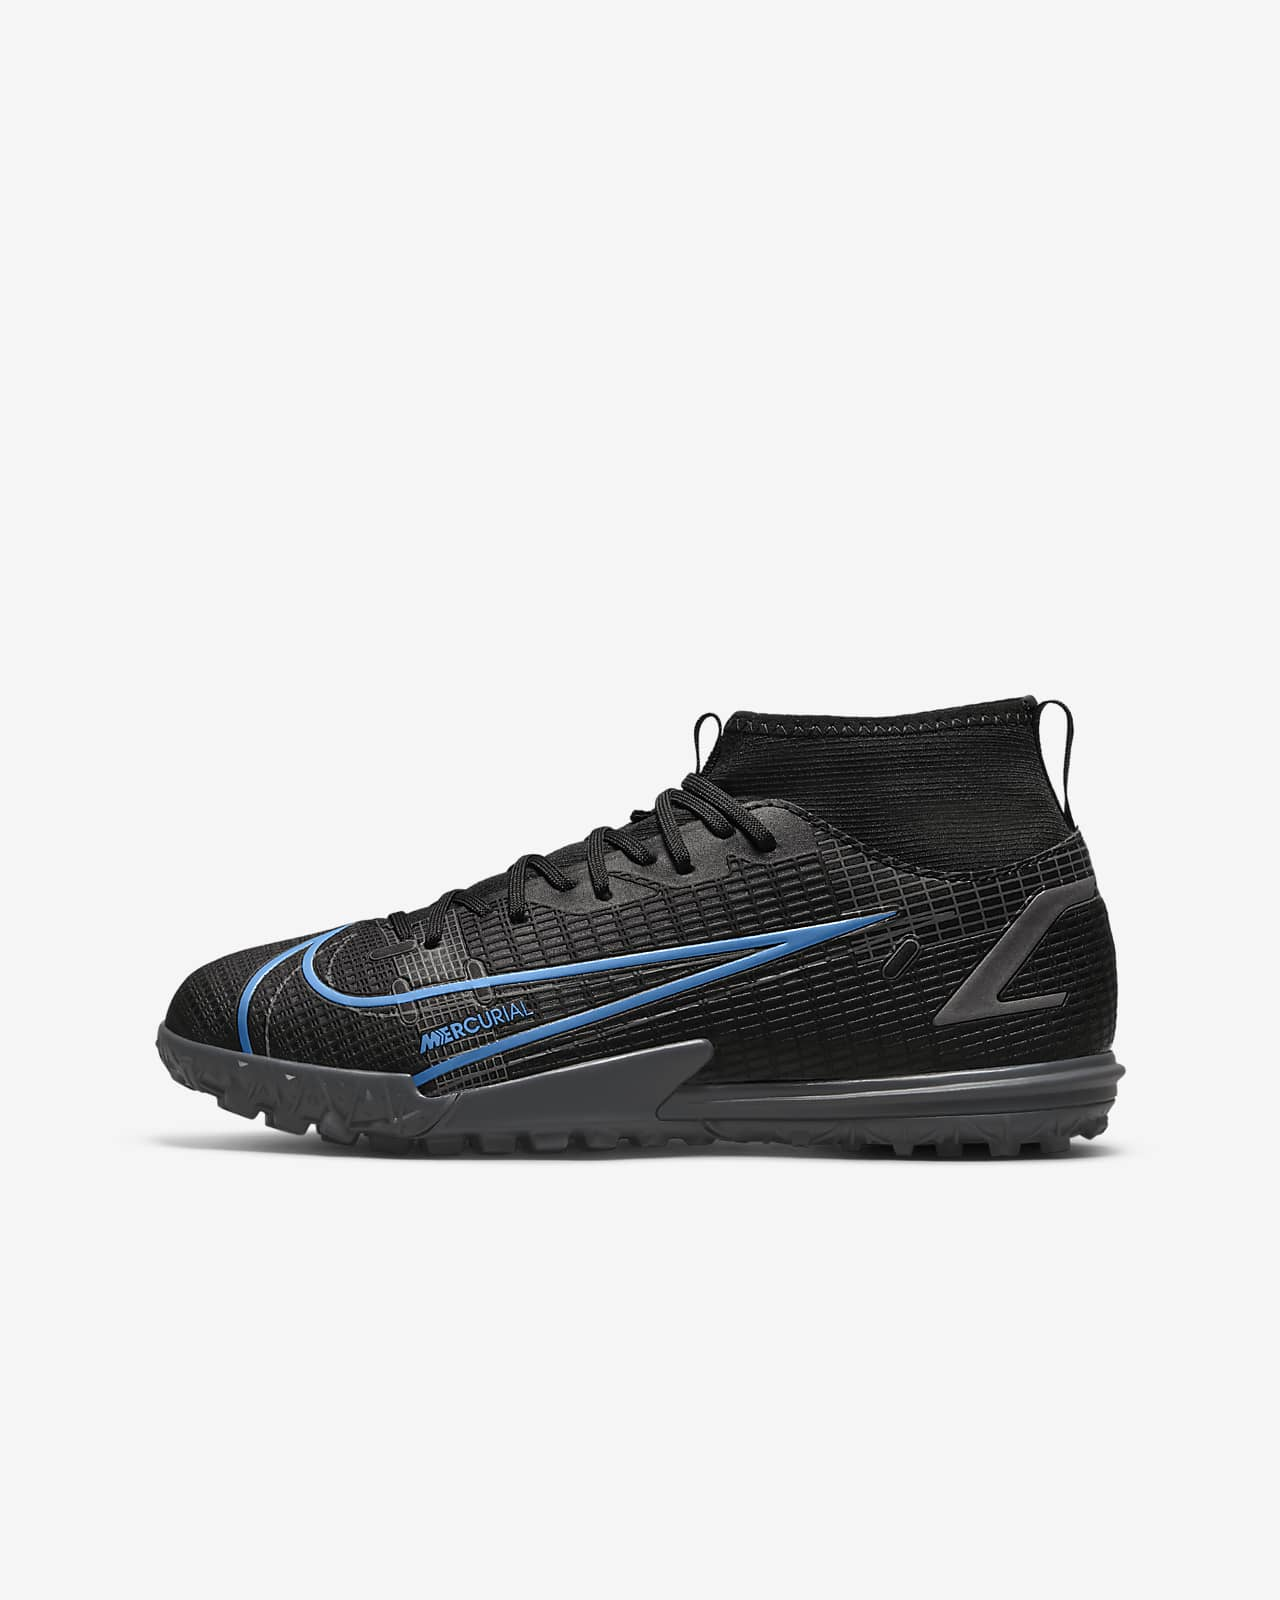 Nike Jr. Mercurial Superfly 8 Academy TF Younger/Older Kids' Artificial-Turf Football Shoe